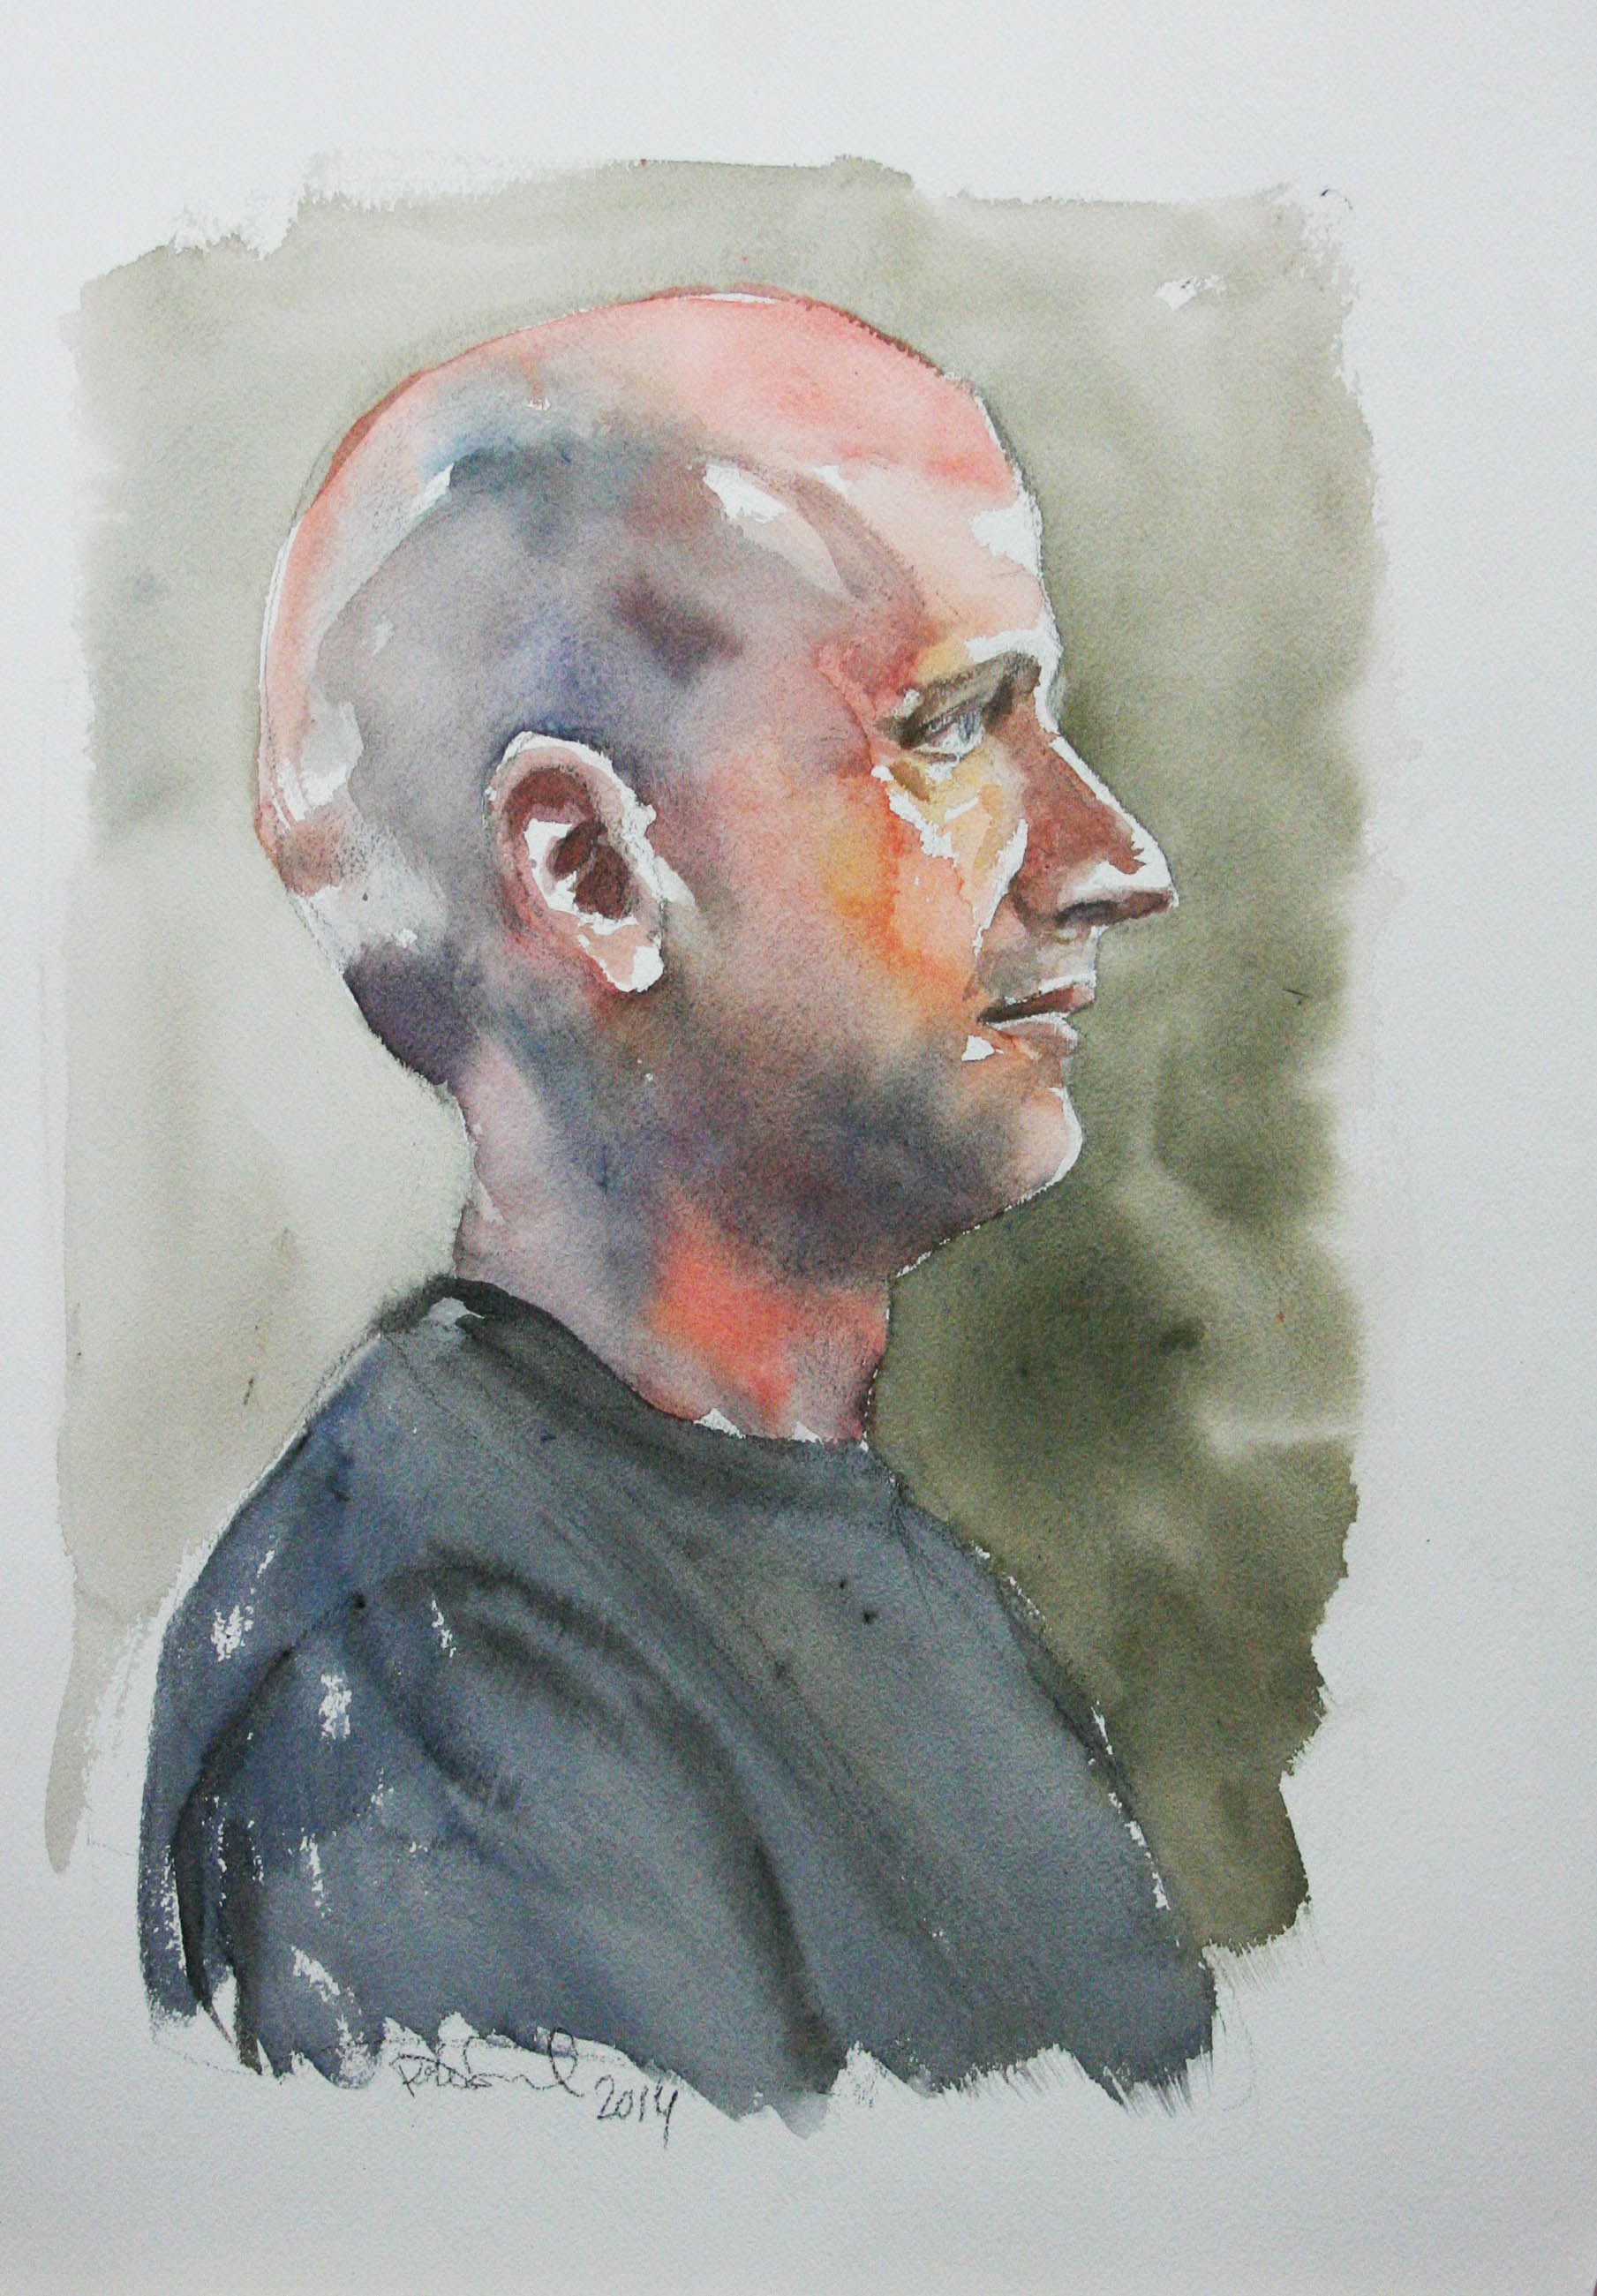 Peter Seward did this hour watercolor.